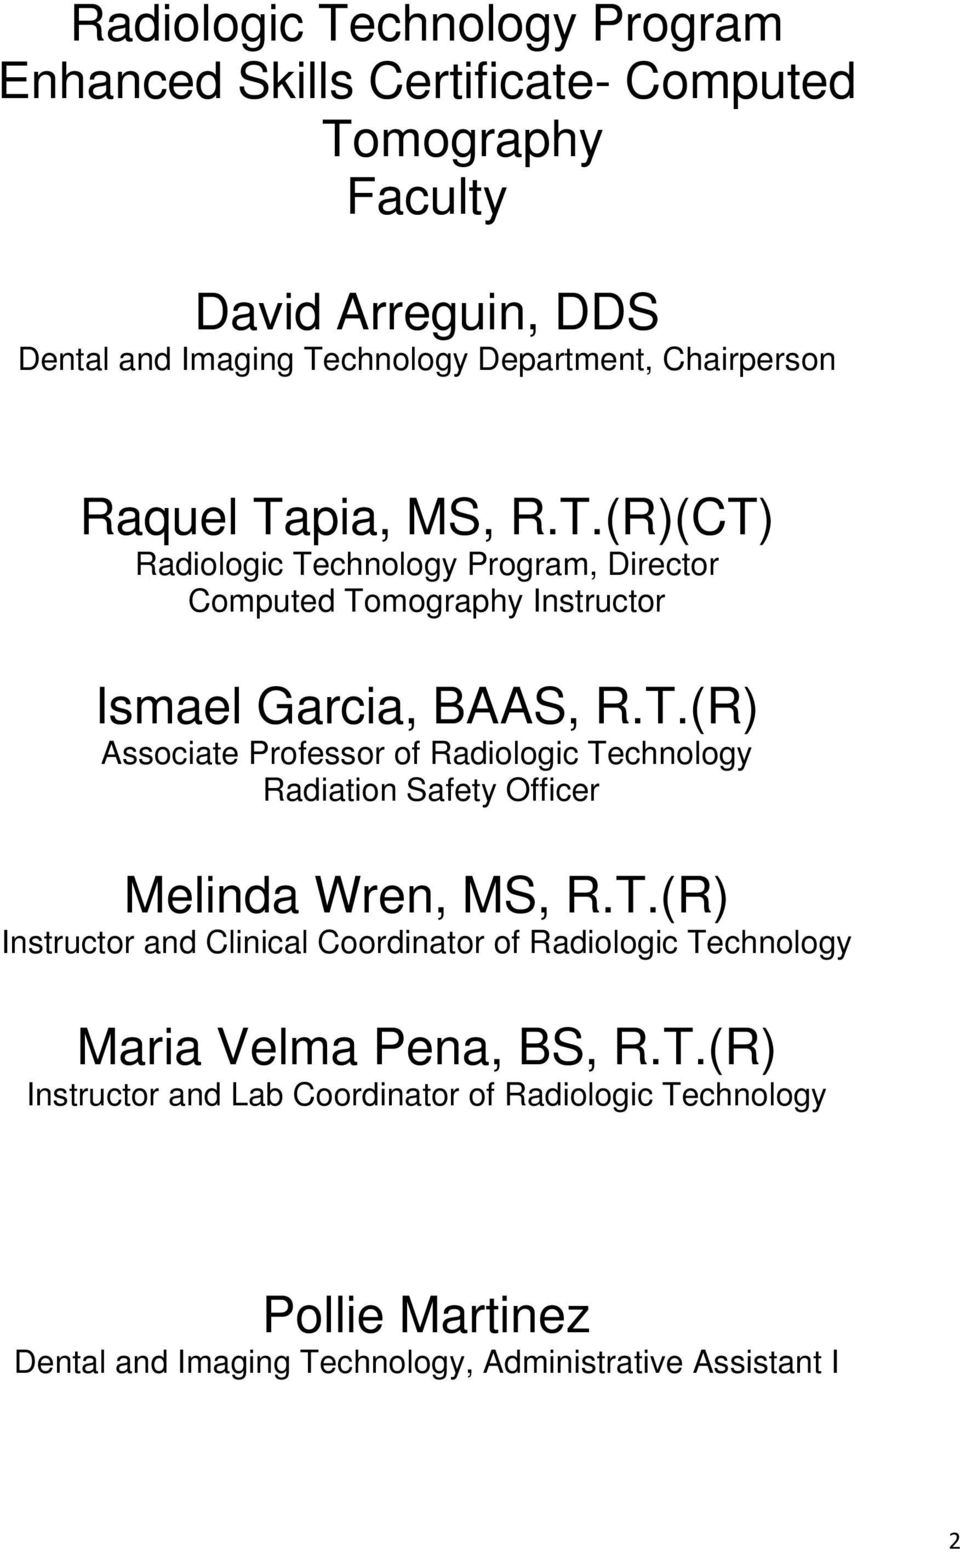 T.(R) Instructor and Clinical Coordinator of Radiologic Technology Maria Velma Pena, BS, R.T.(R) Instructor and Lab Coordinator of Radiologic Technology Pollie Martinez Dental and Imaging Technology, Administrative Assistant I 2